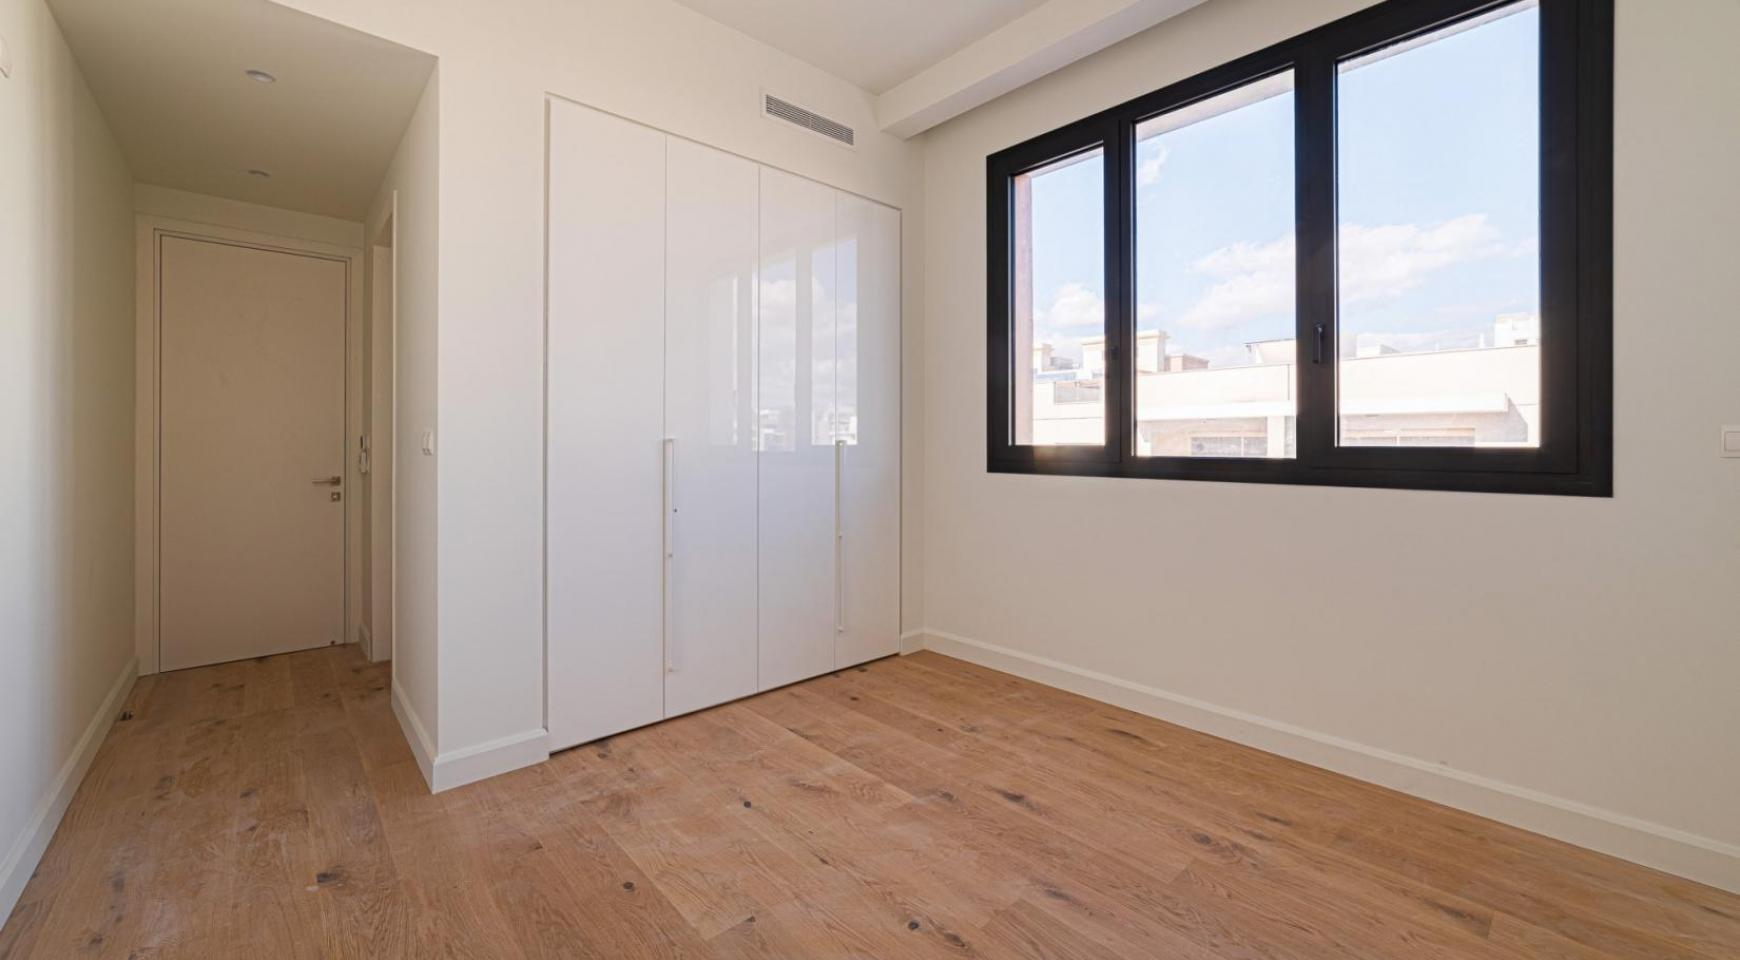 HORTENSIA RESIDENCE, Apt. 101. 2 Bedroom Apartment  in a New Complex near the Sea - 23